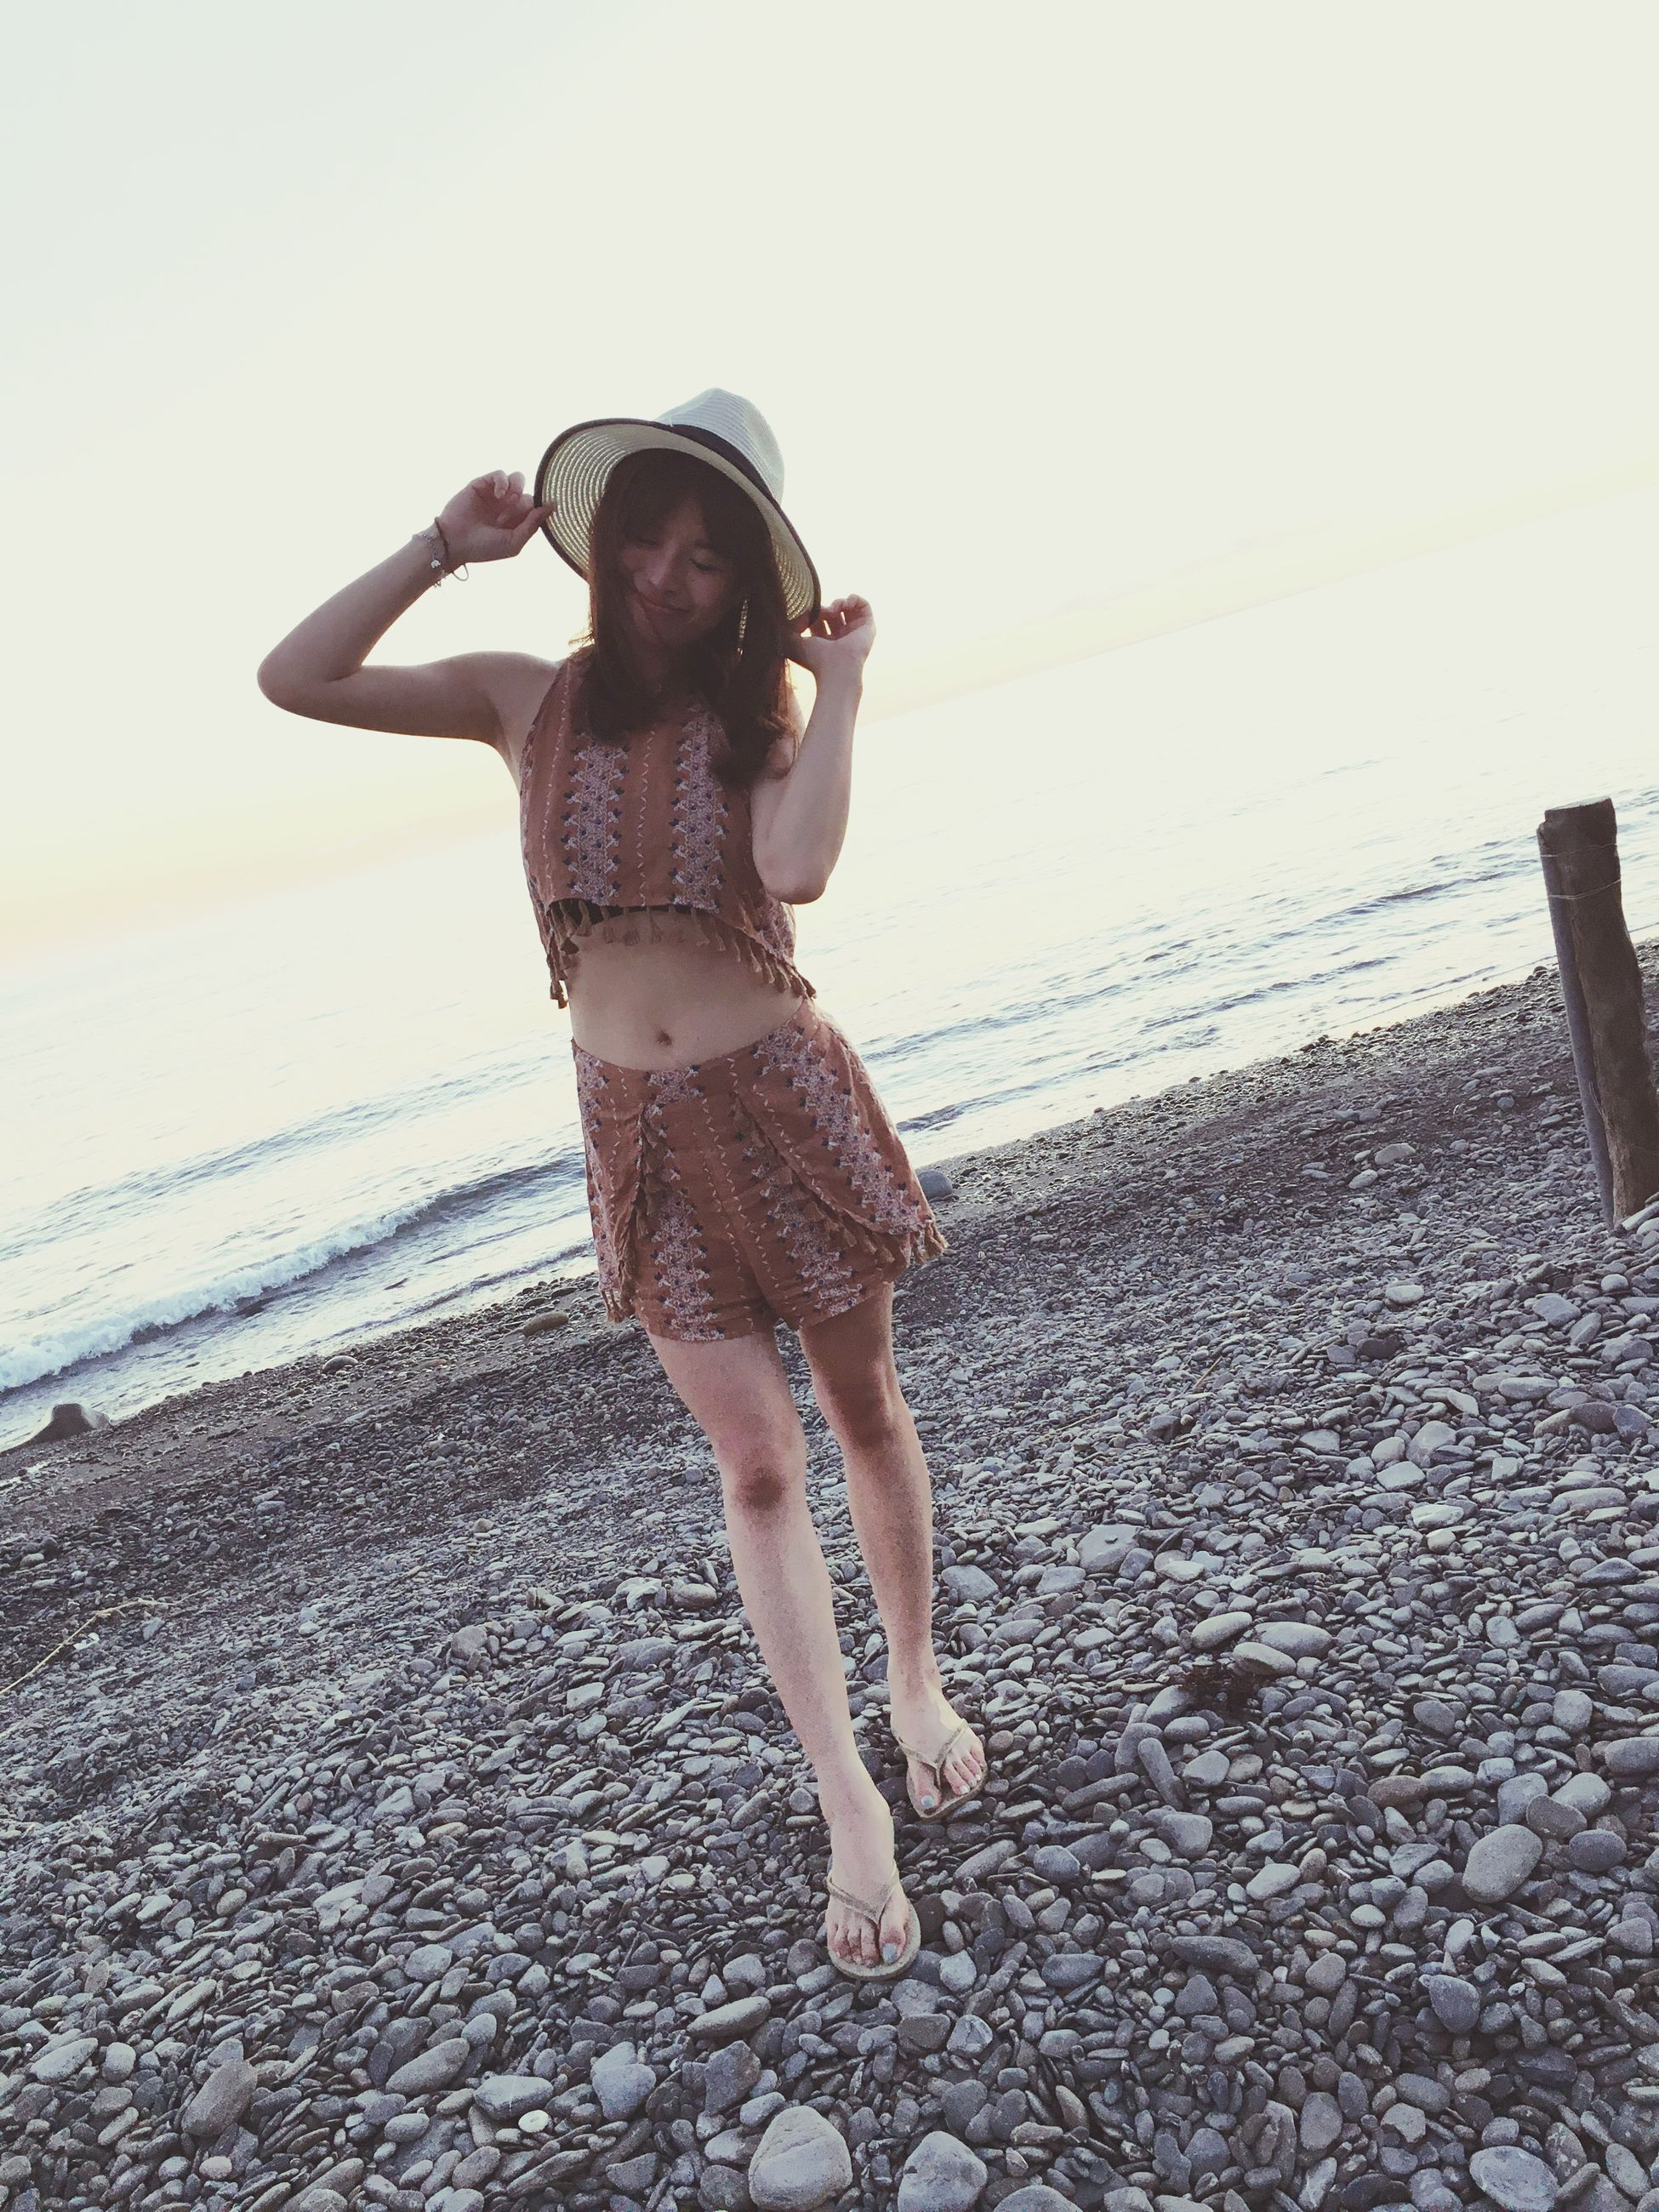 lifestyles, full length, leisure activity, beach, casual clothing, standing, young adult, person, shore, young women, front view, water, sand, sea, sunlight, looking at camera, vacations, sky